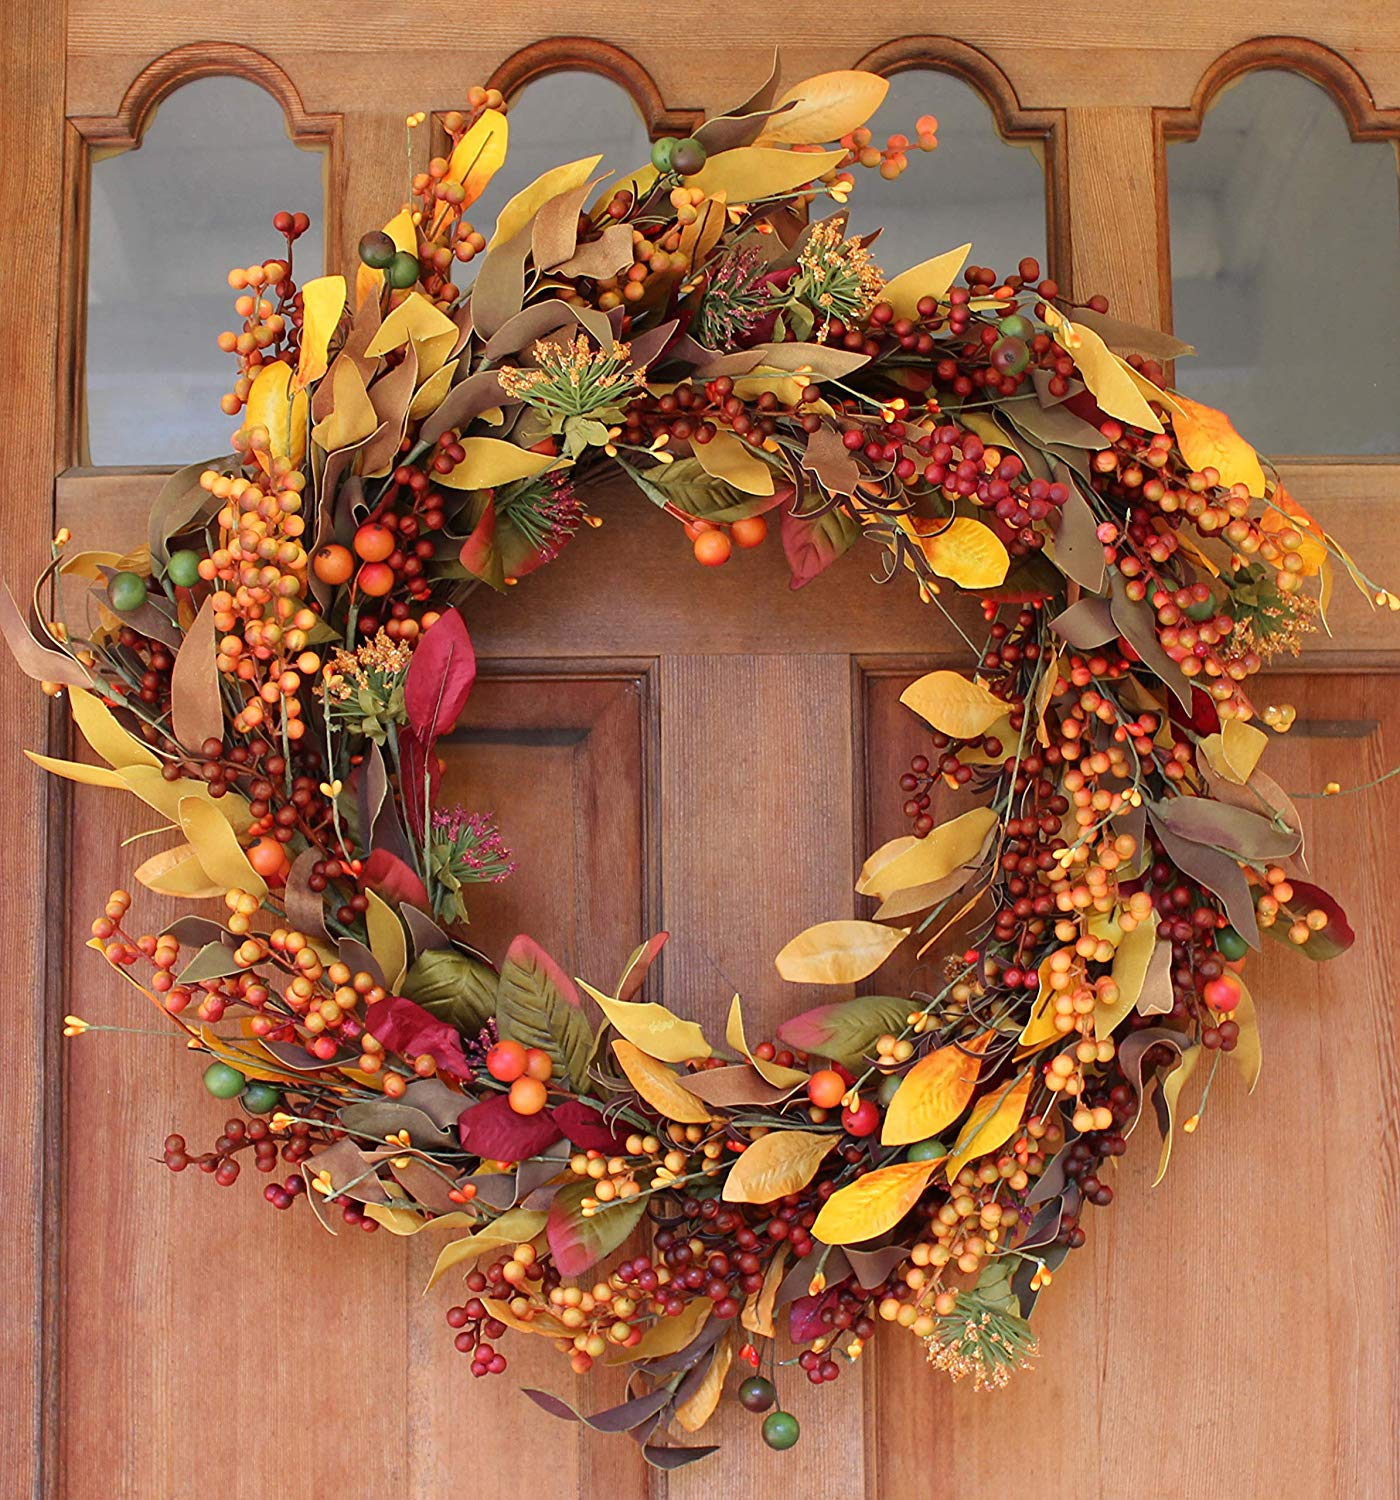 Saranac Berry Fall Front Door Wreath 22 Inches - Lush Seasonal Foliage and Berries, Approved for Covered Outdoor Use, with Beautiful White Gift Box